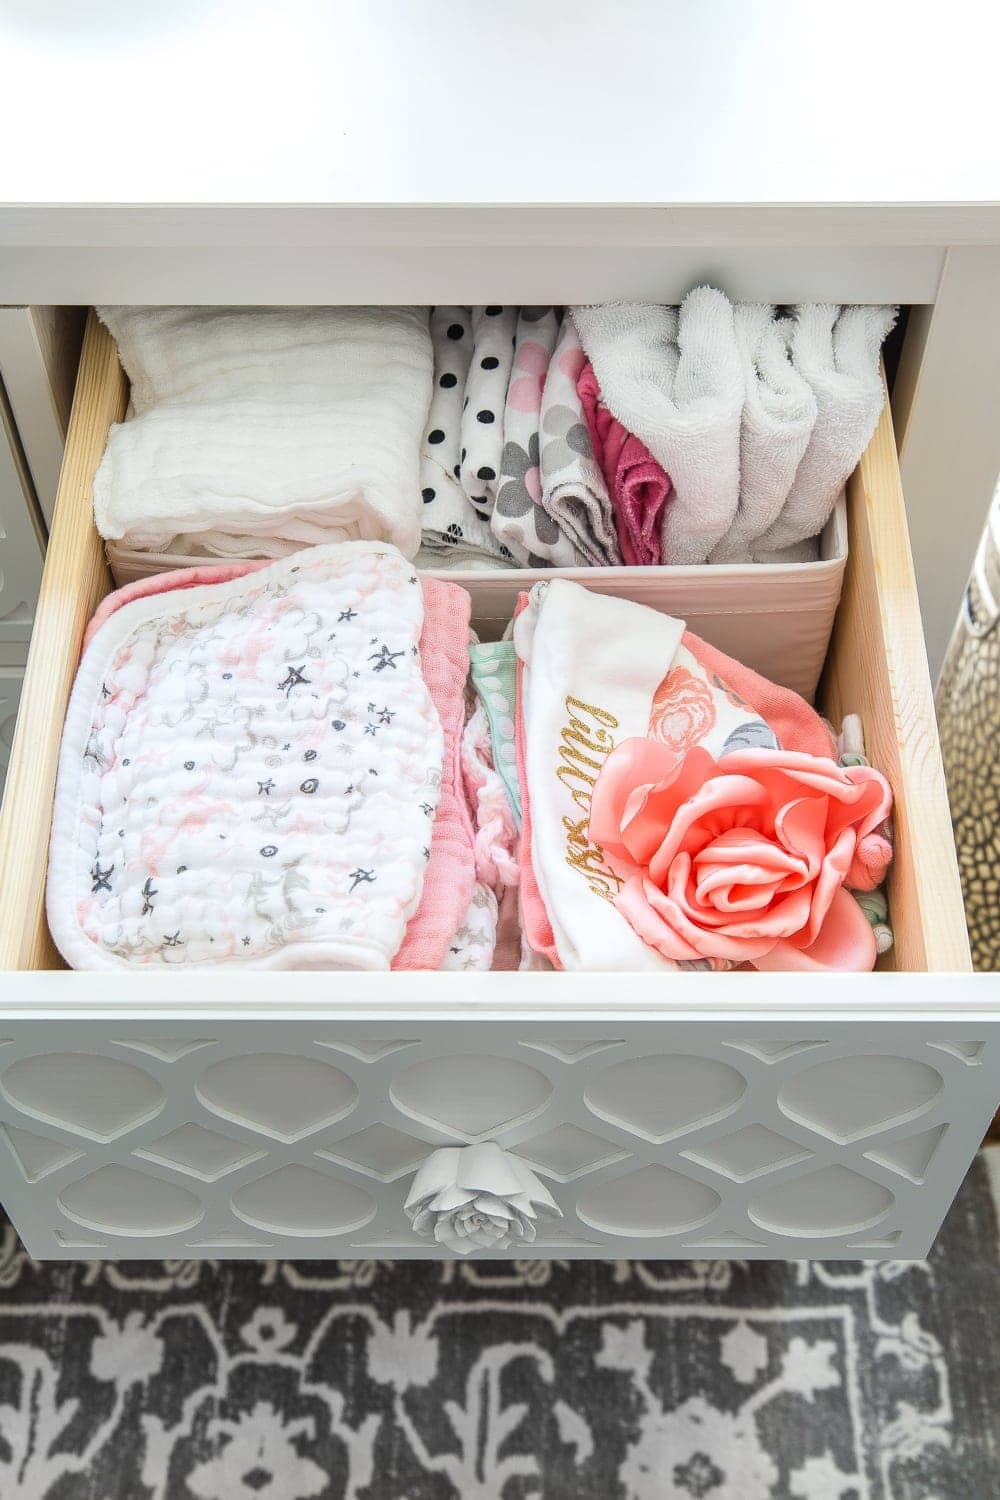 Nursery Organization | Dresser drawers with dividers to store burp cloths, bibs, and hats